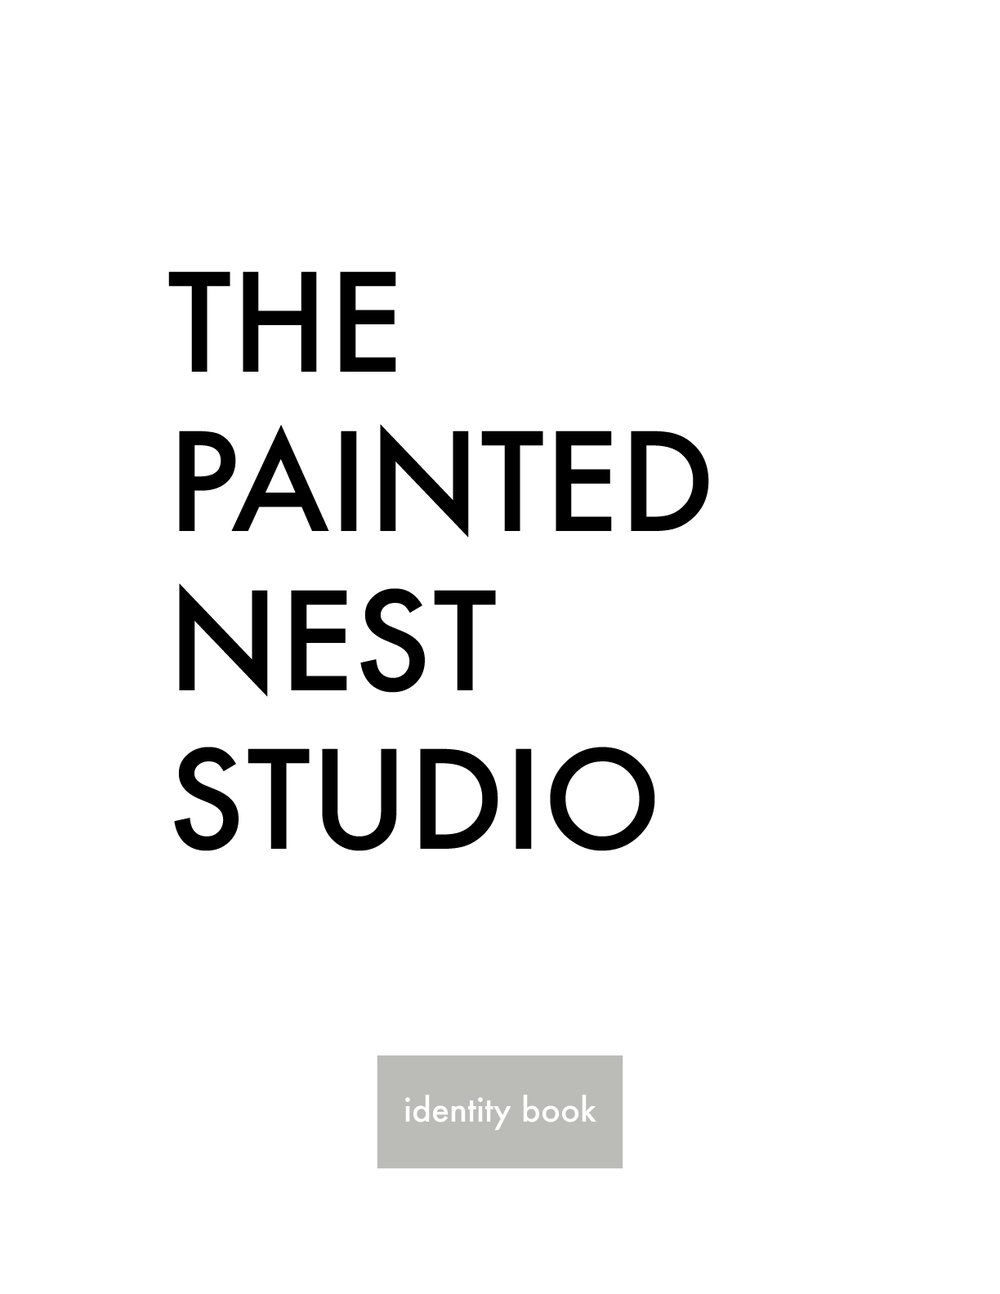 the painted nest studio identity book